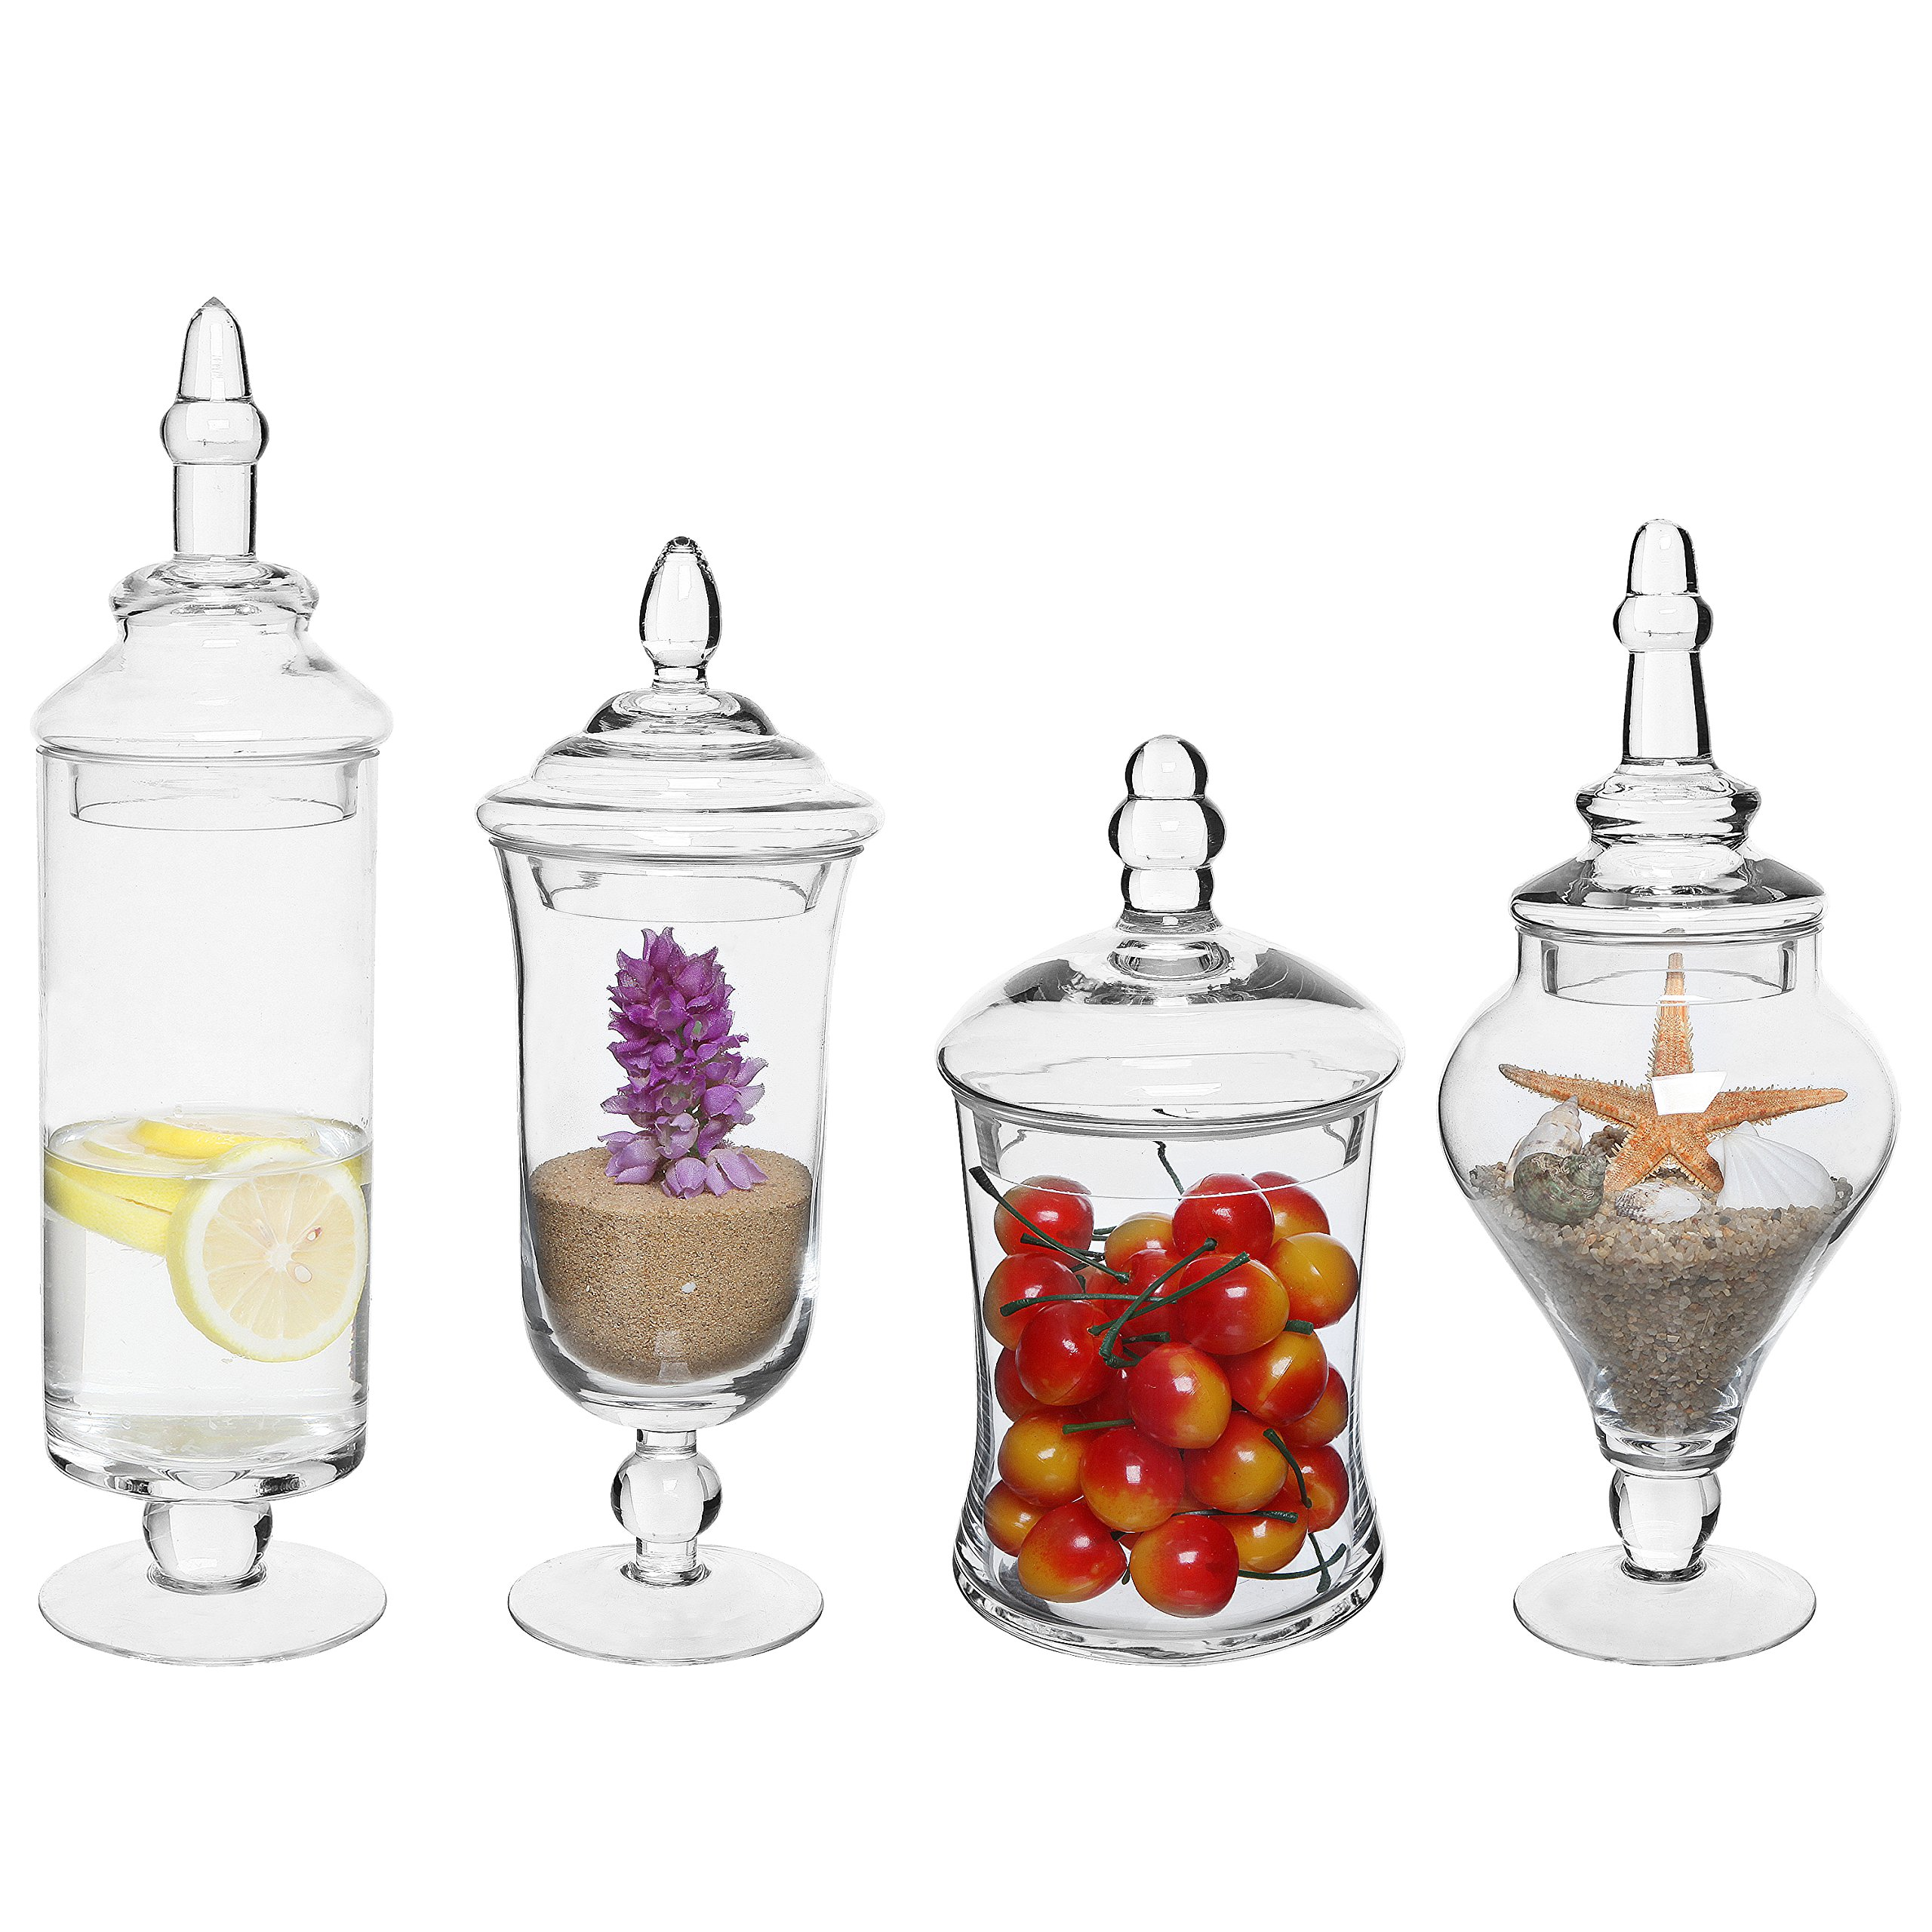 MyGift Set of 4 Clear Glass Apothecary Jars/Wedding Candy Serving Canisters/Decorative Small Storage Bottles by MyGift